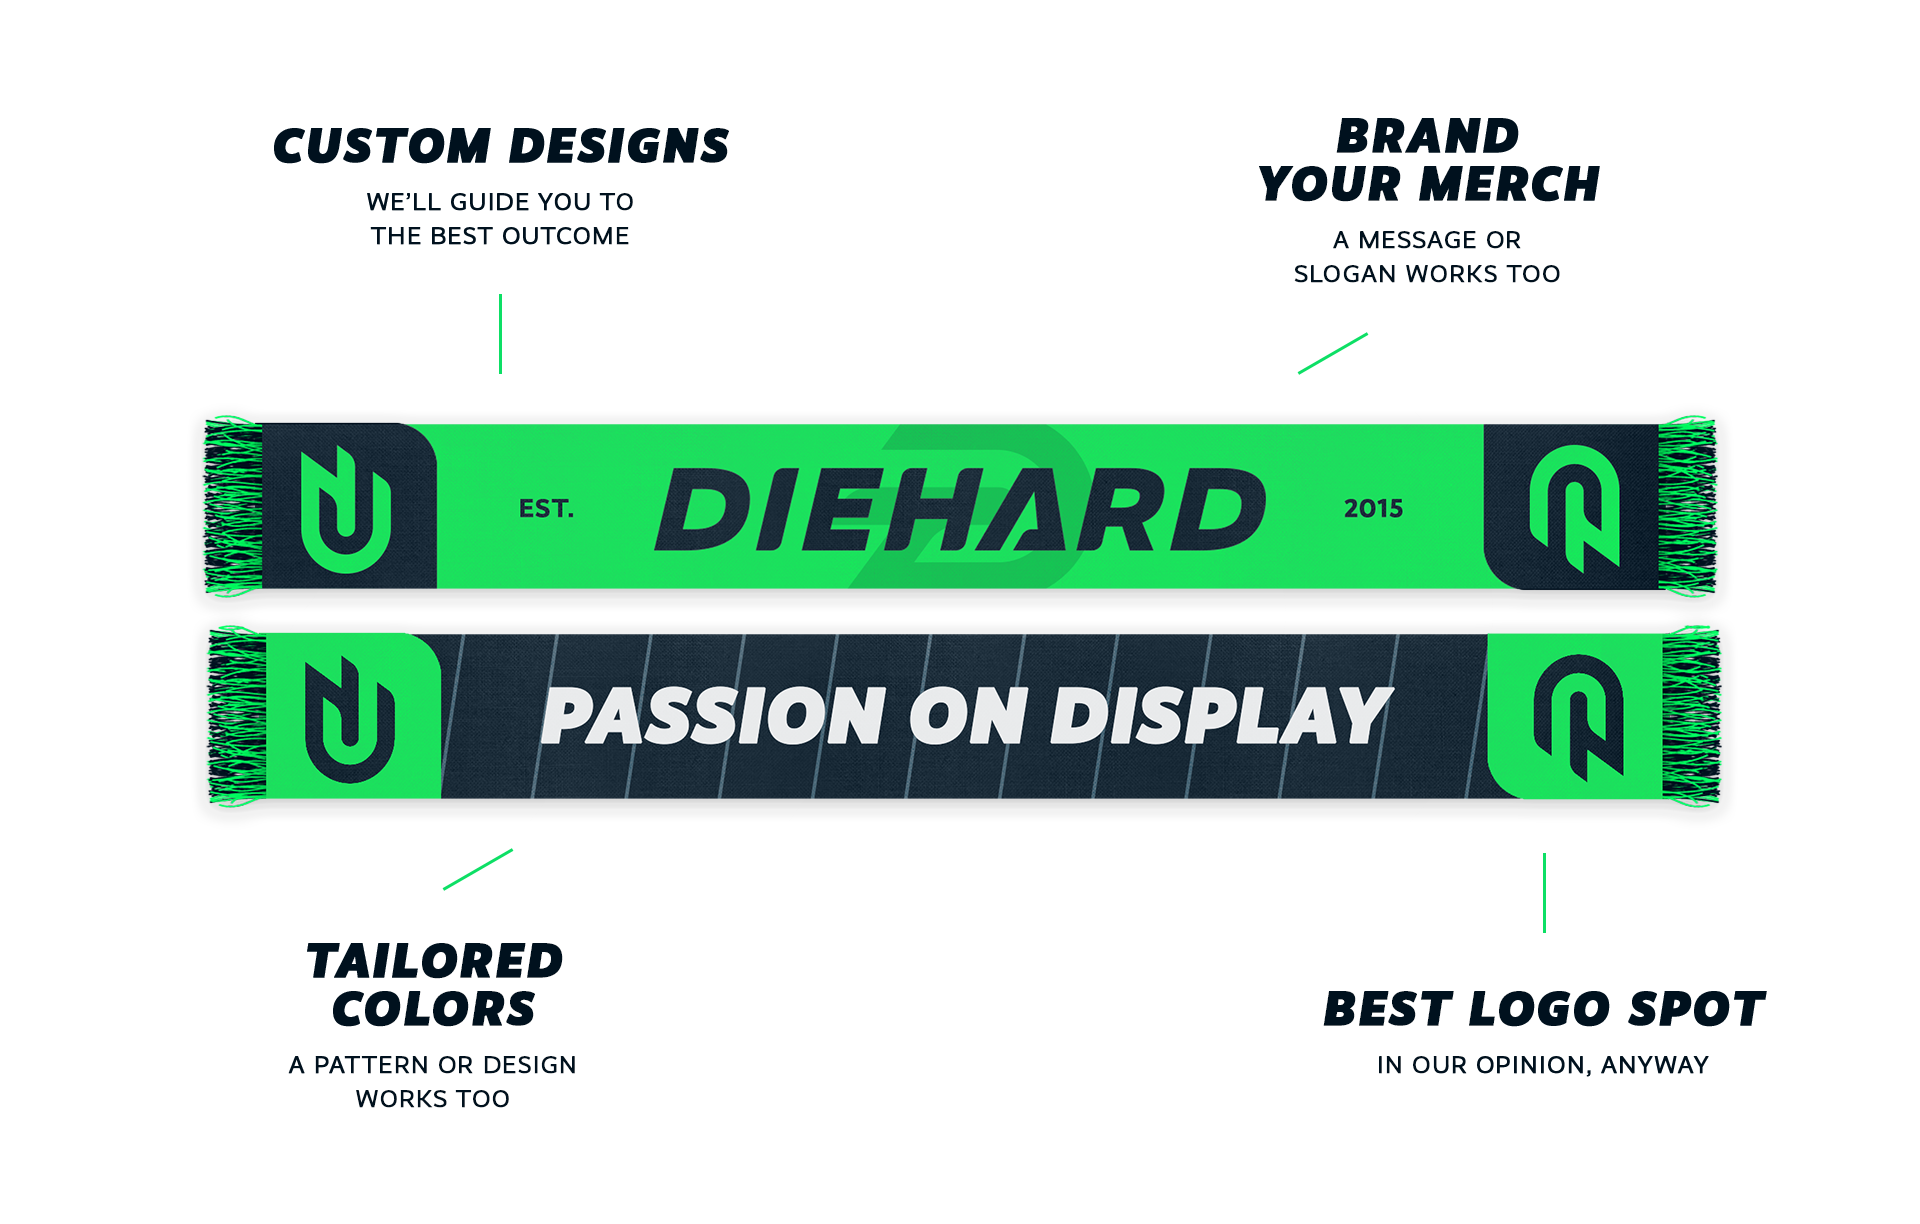 A mock up of a sample custom scarf with branded with logo, colors, and messaging